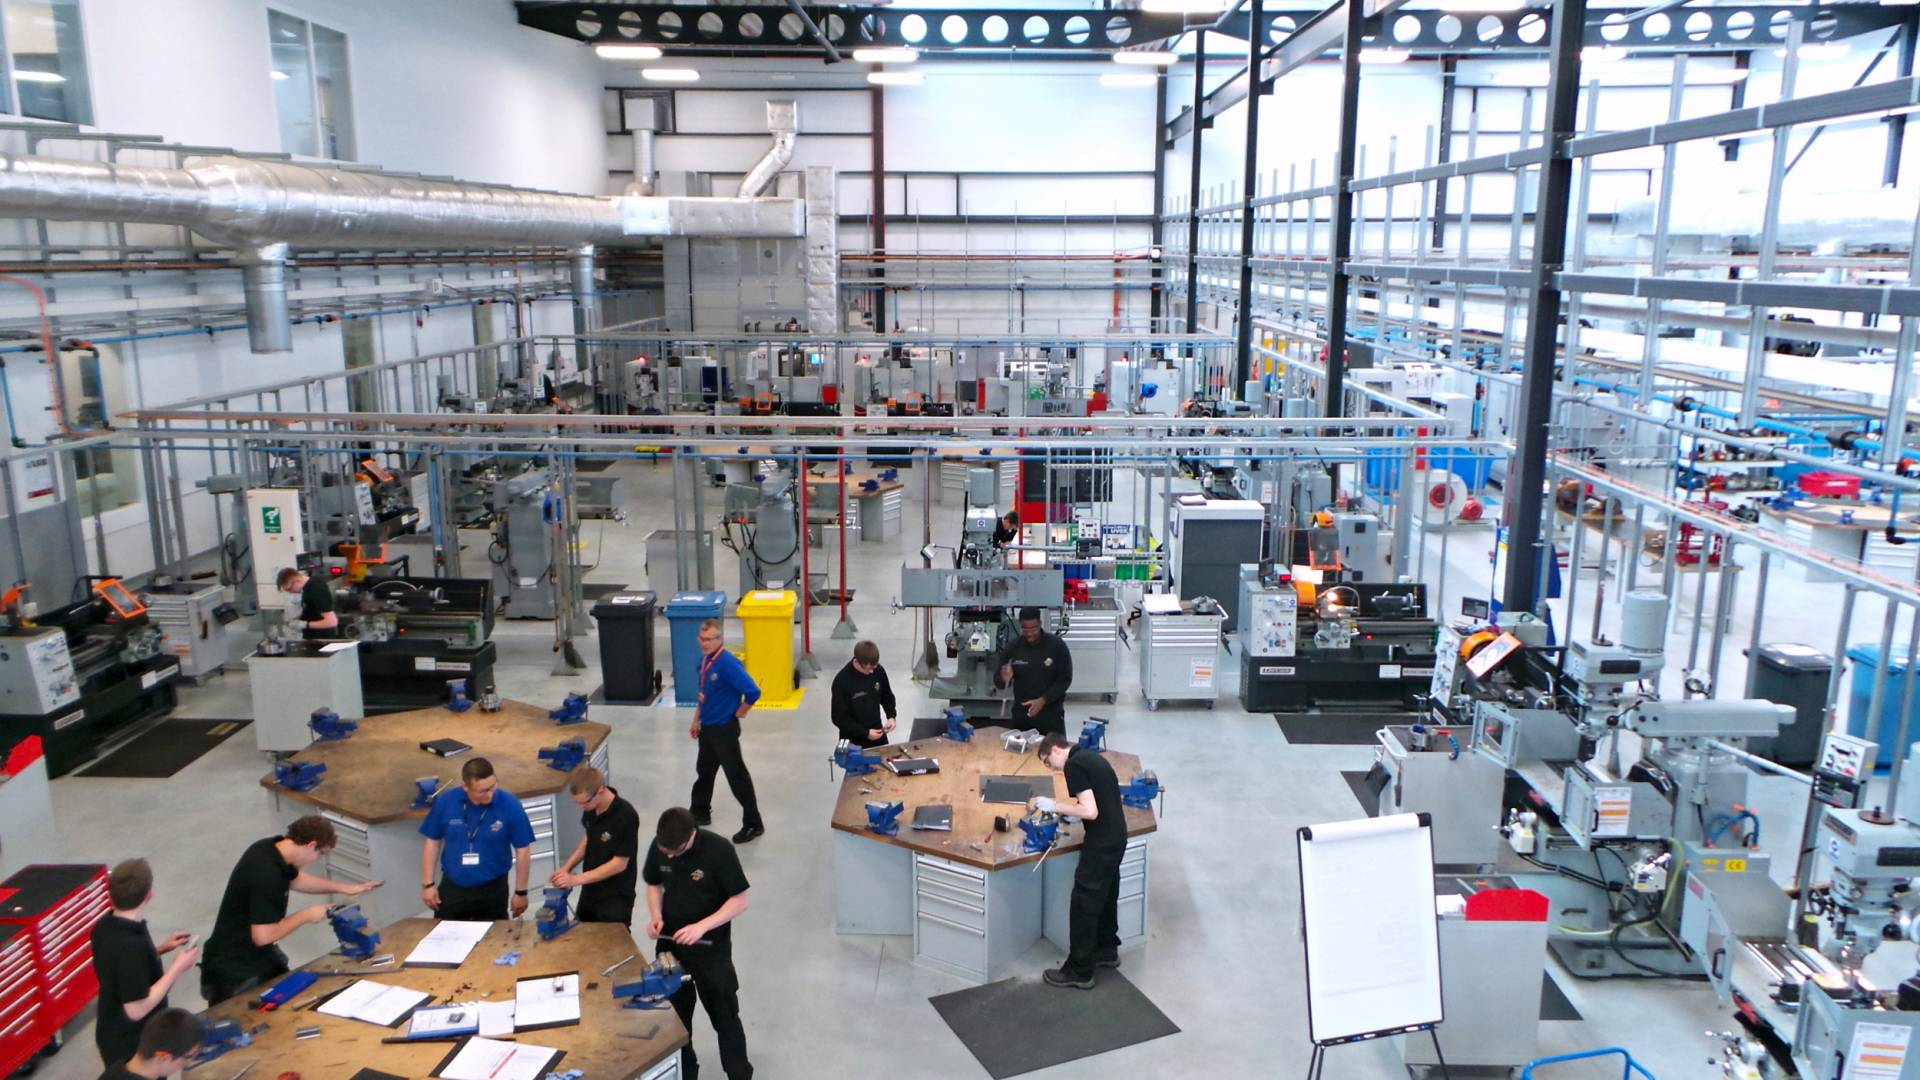 Advanced Manufacturing - The workshop floor of the AMRC Training Centre, in Catcliffe, Rotherham – image courtesy of the AMRC Training Centre.